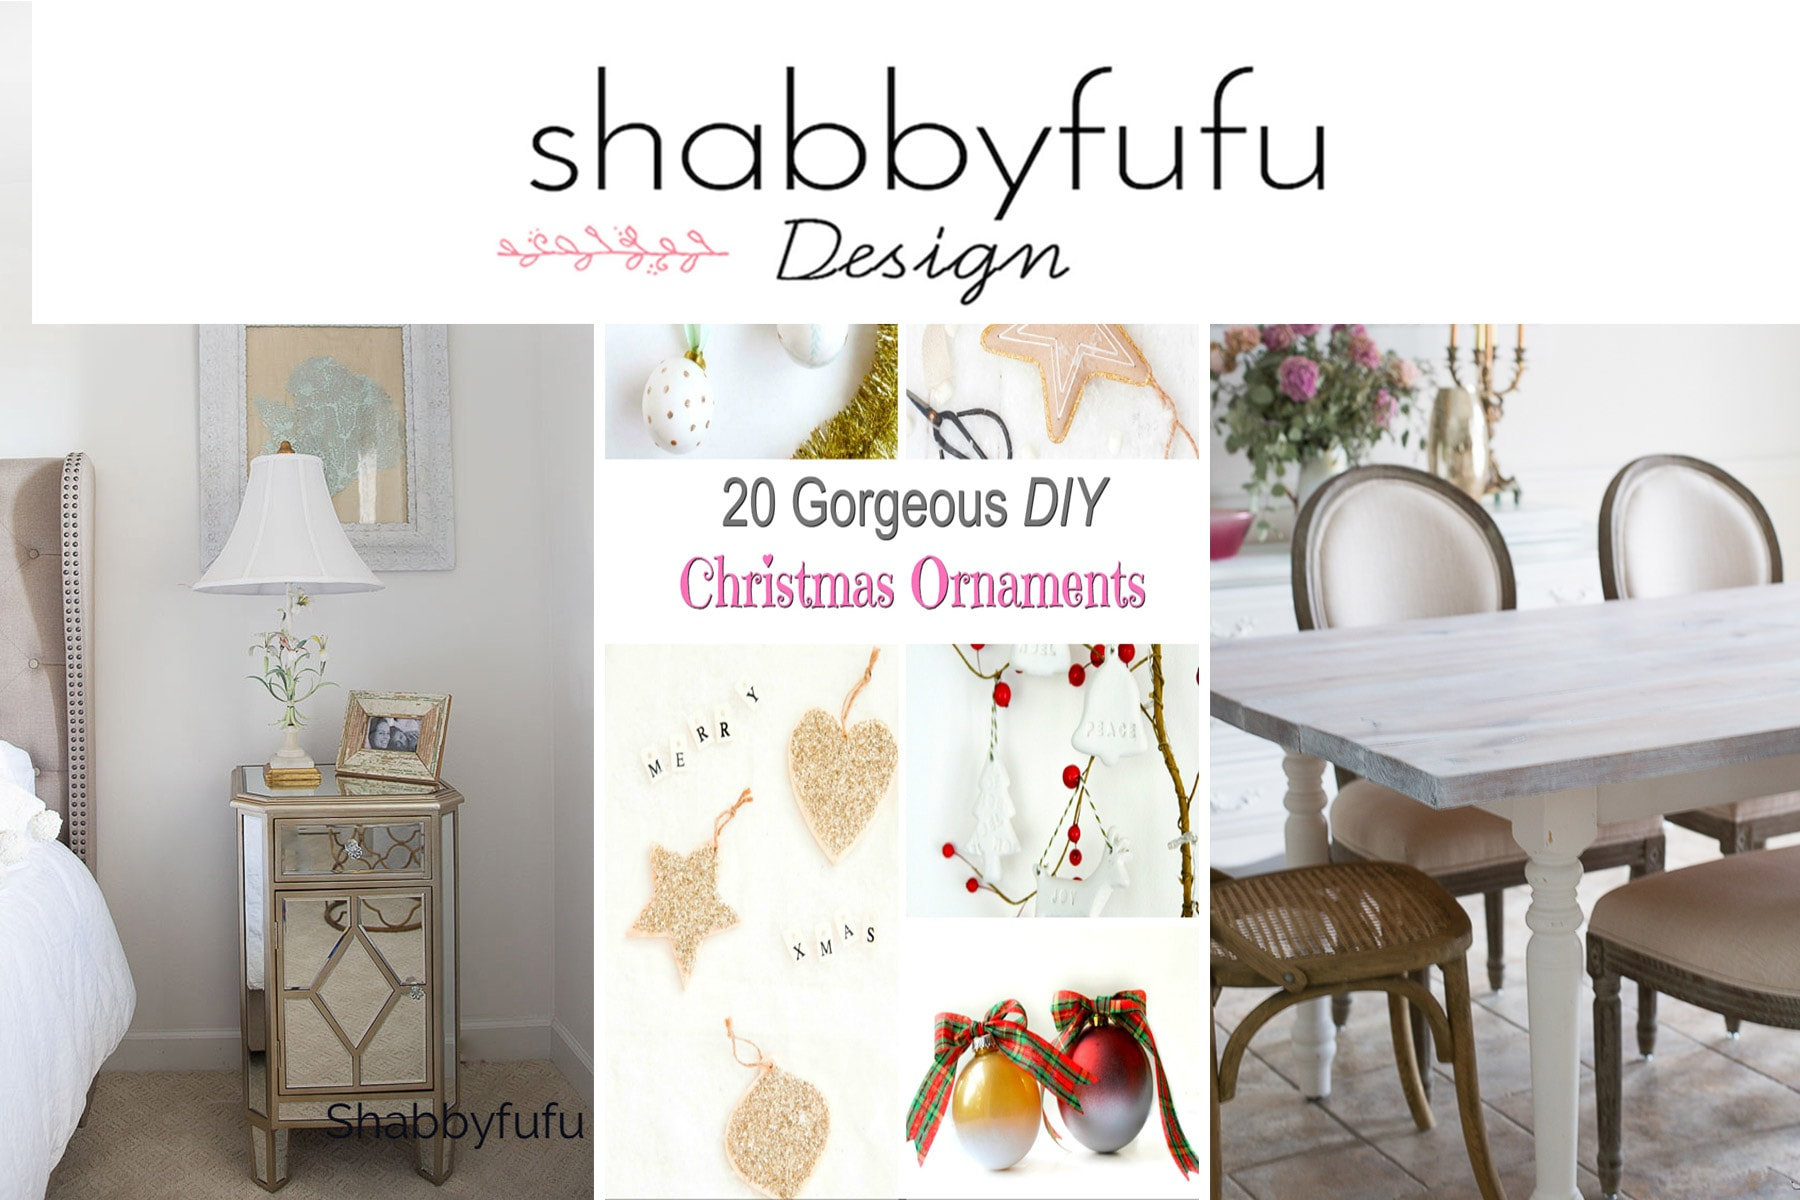 Shabbyfufu collage - Week 3